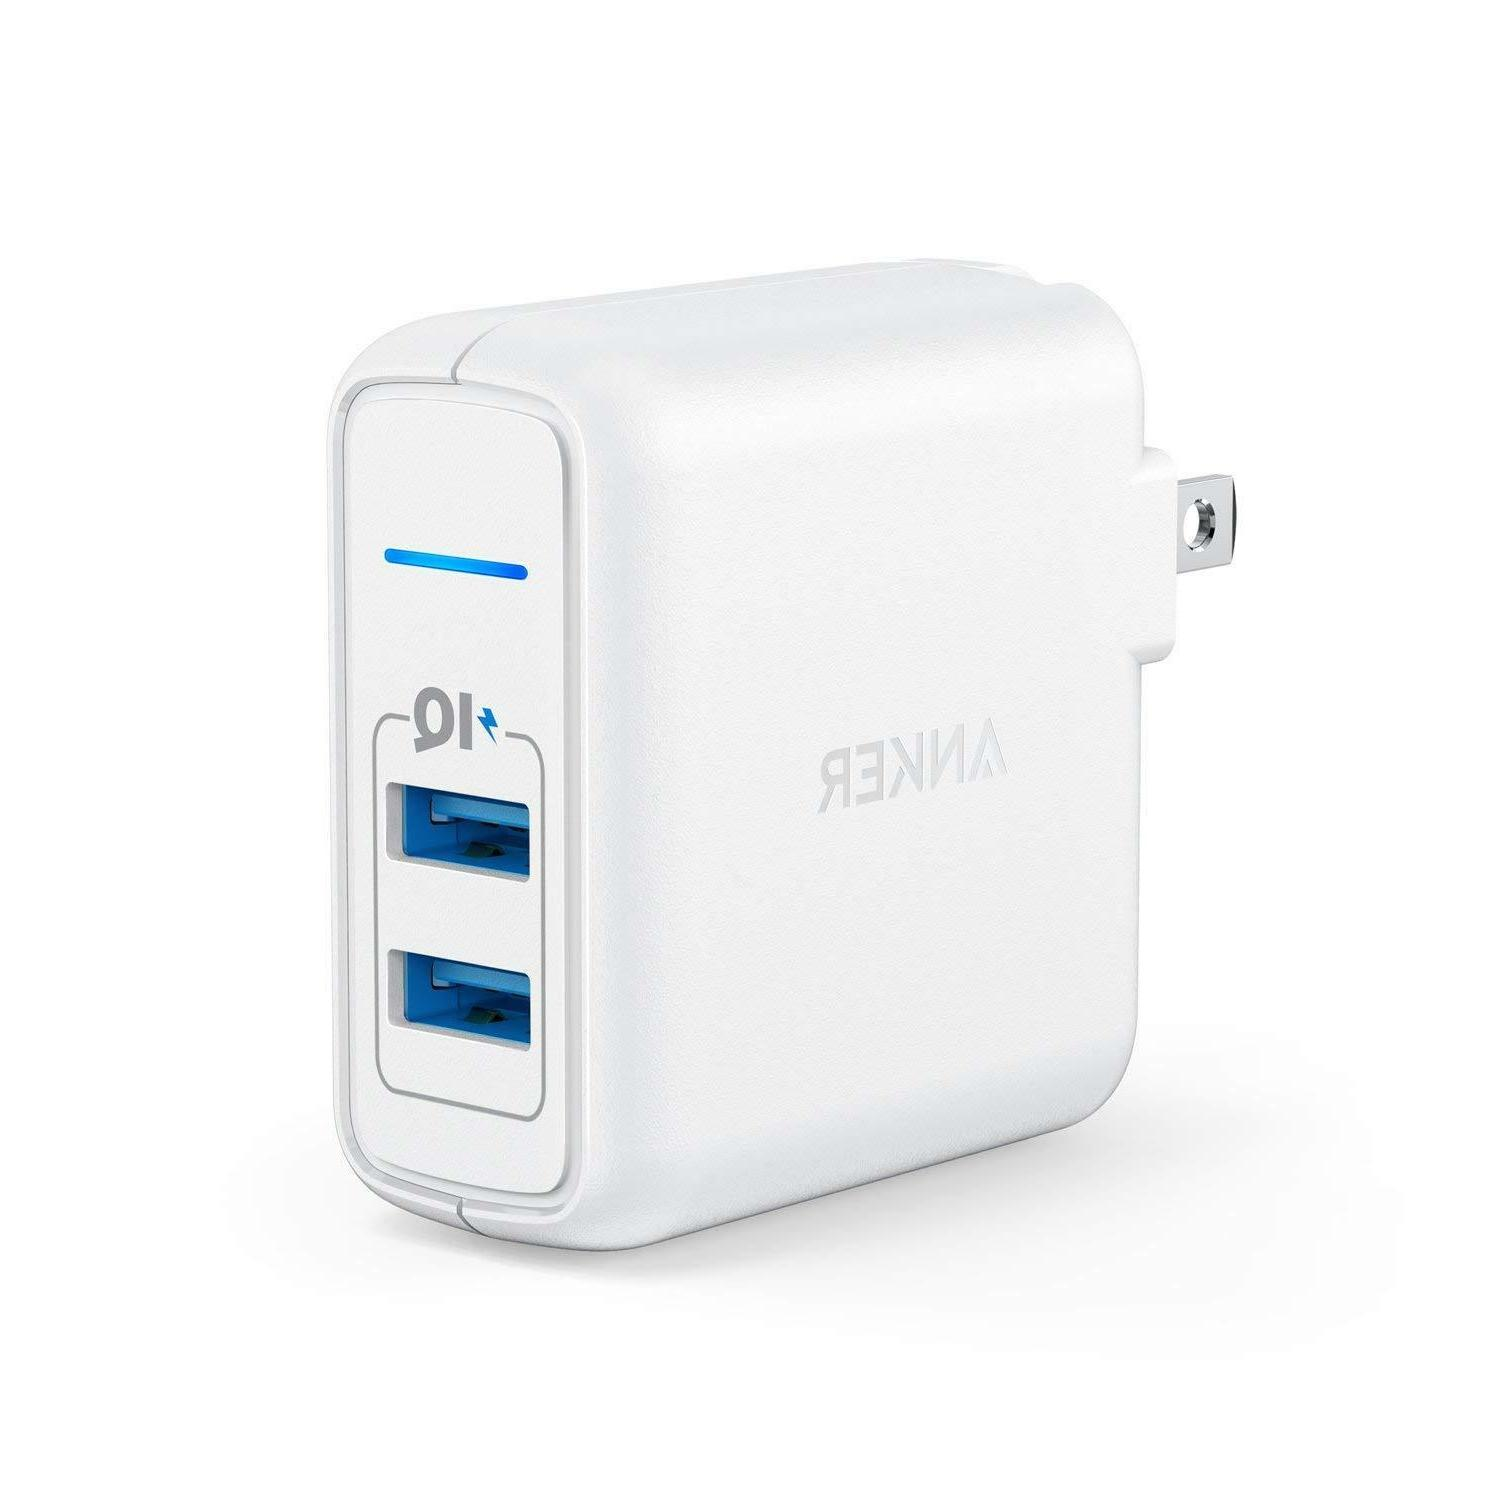 Anker Elite USB Charger PowerPort 2 Dual Port 24W Wall Charg